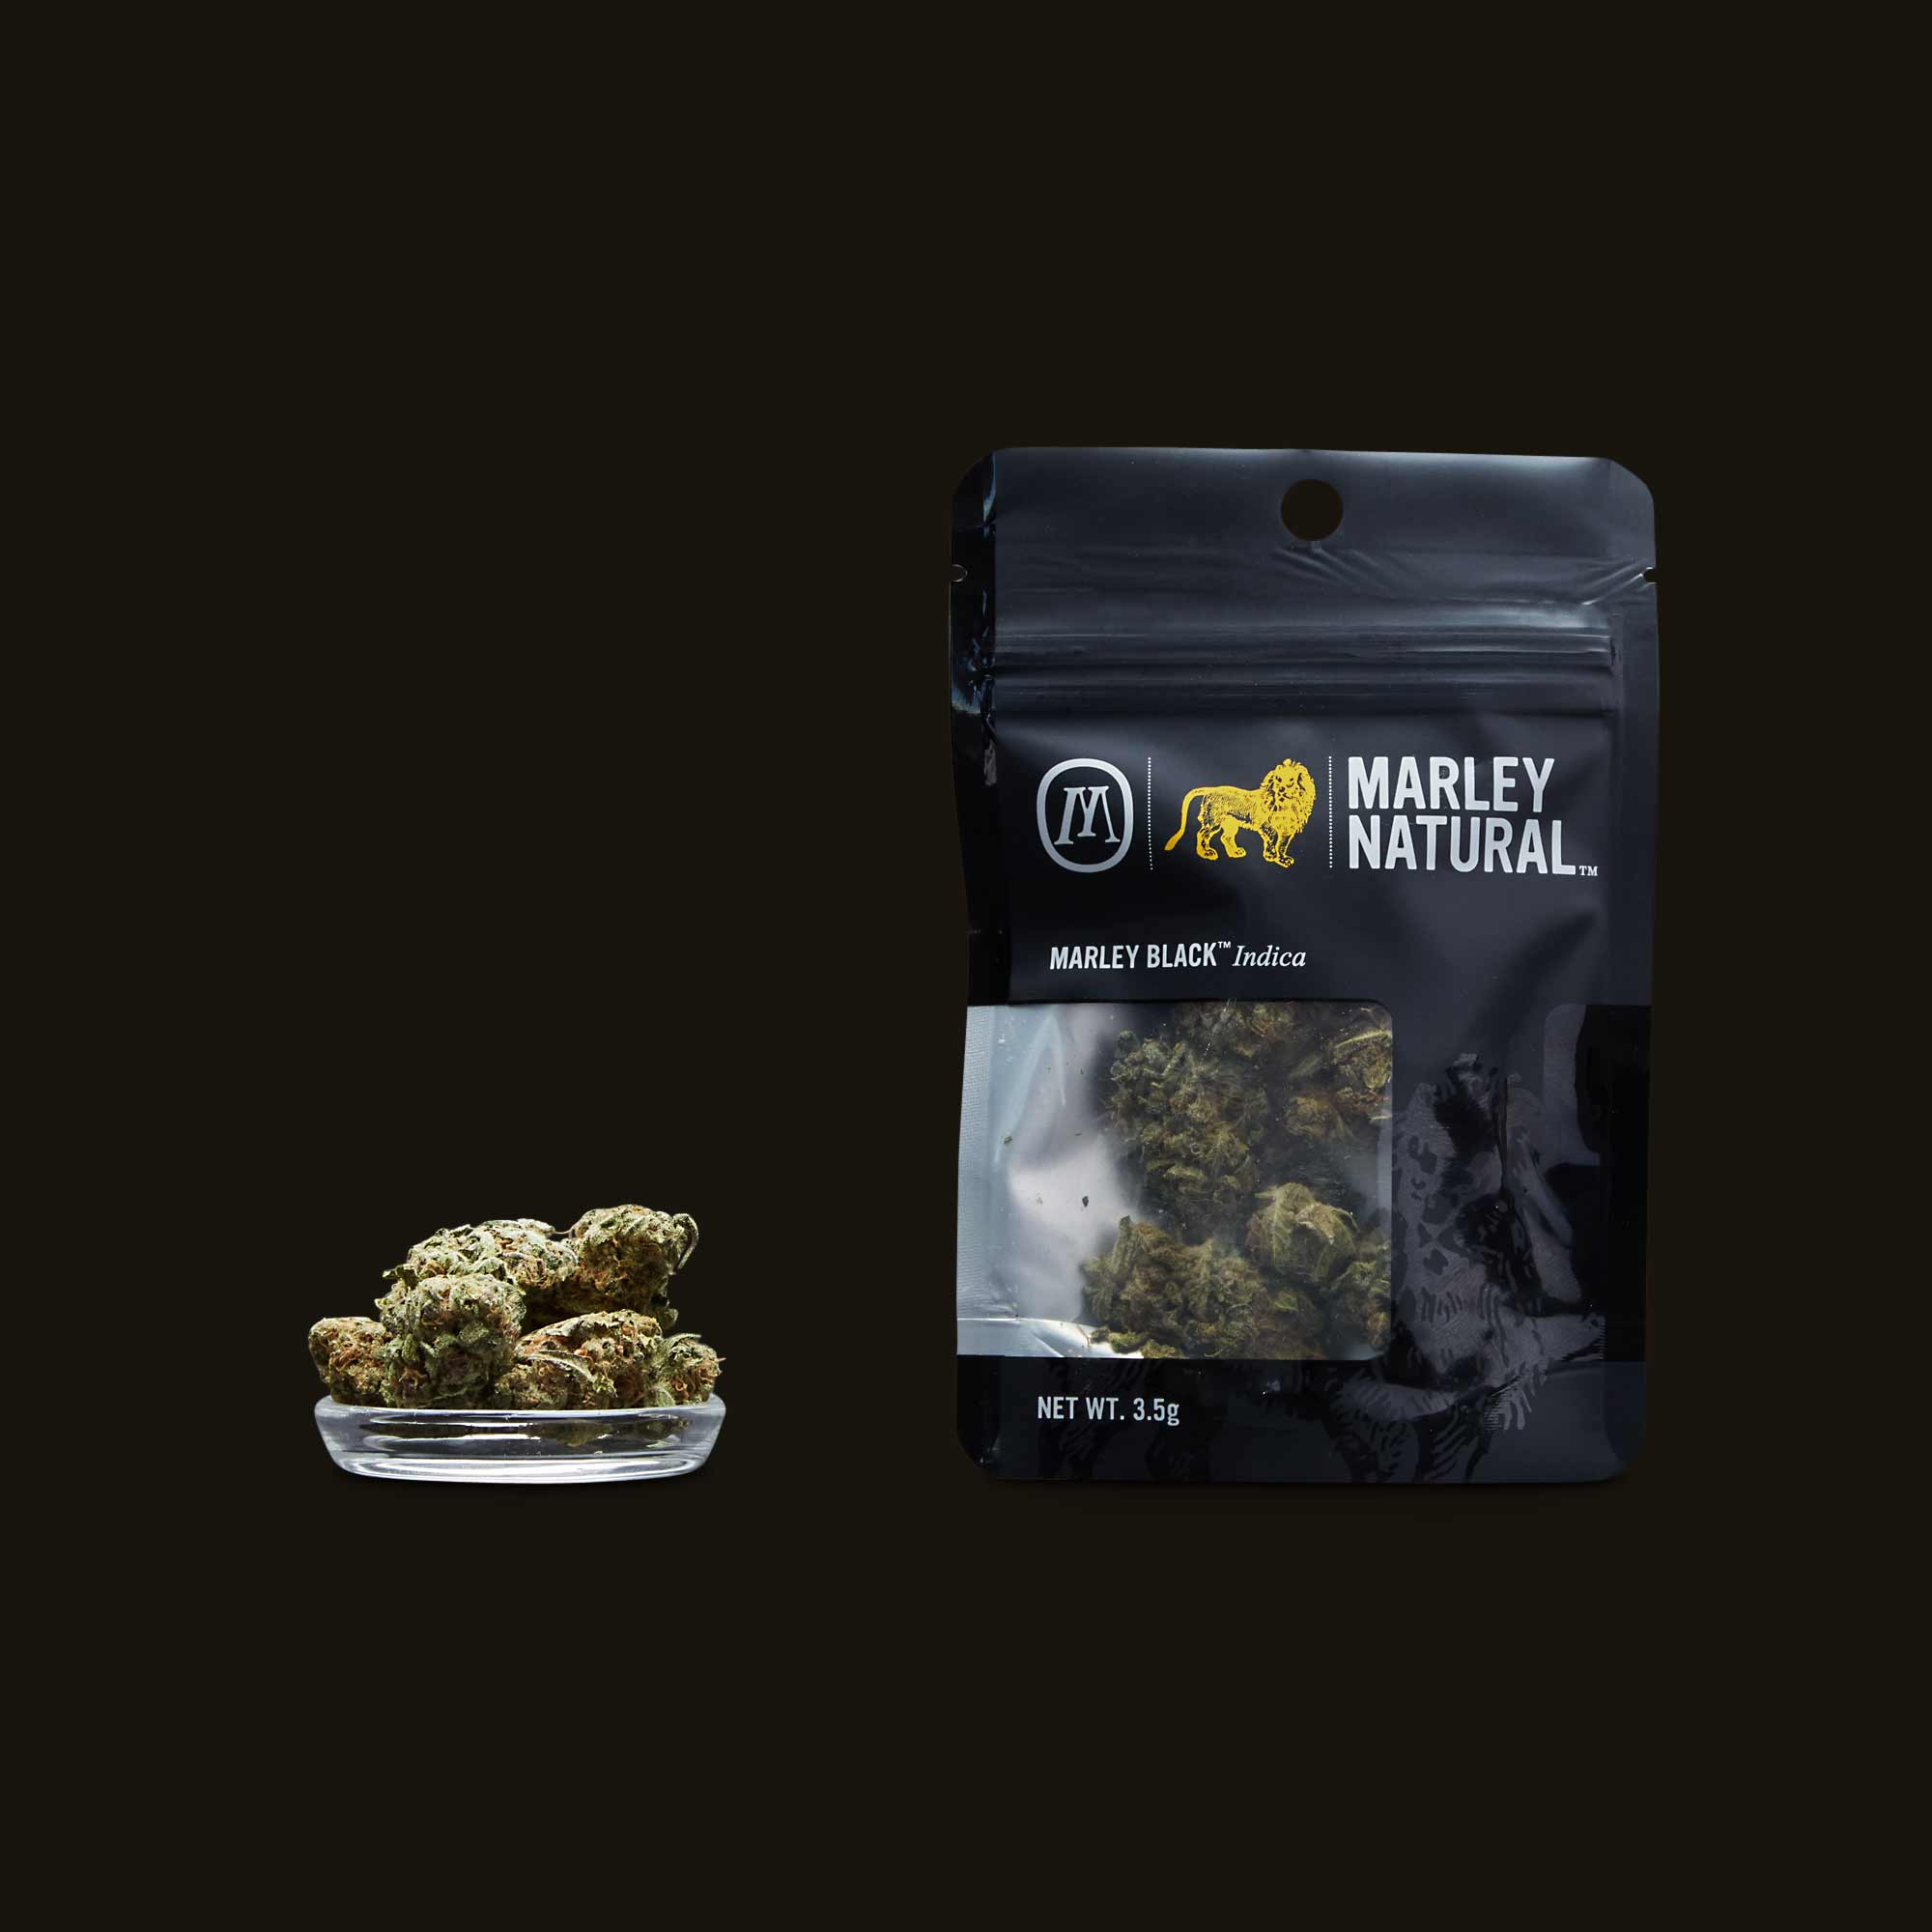 Marley Natural Marley Black Flower